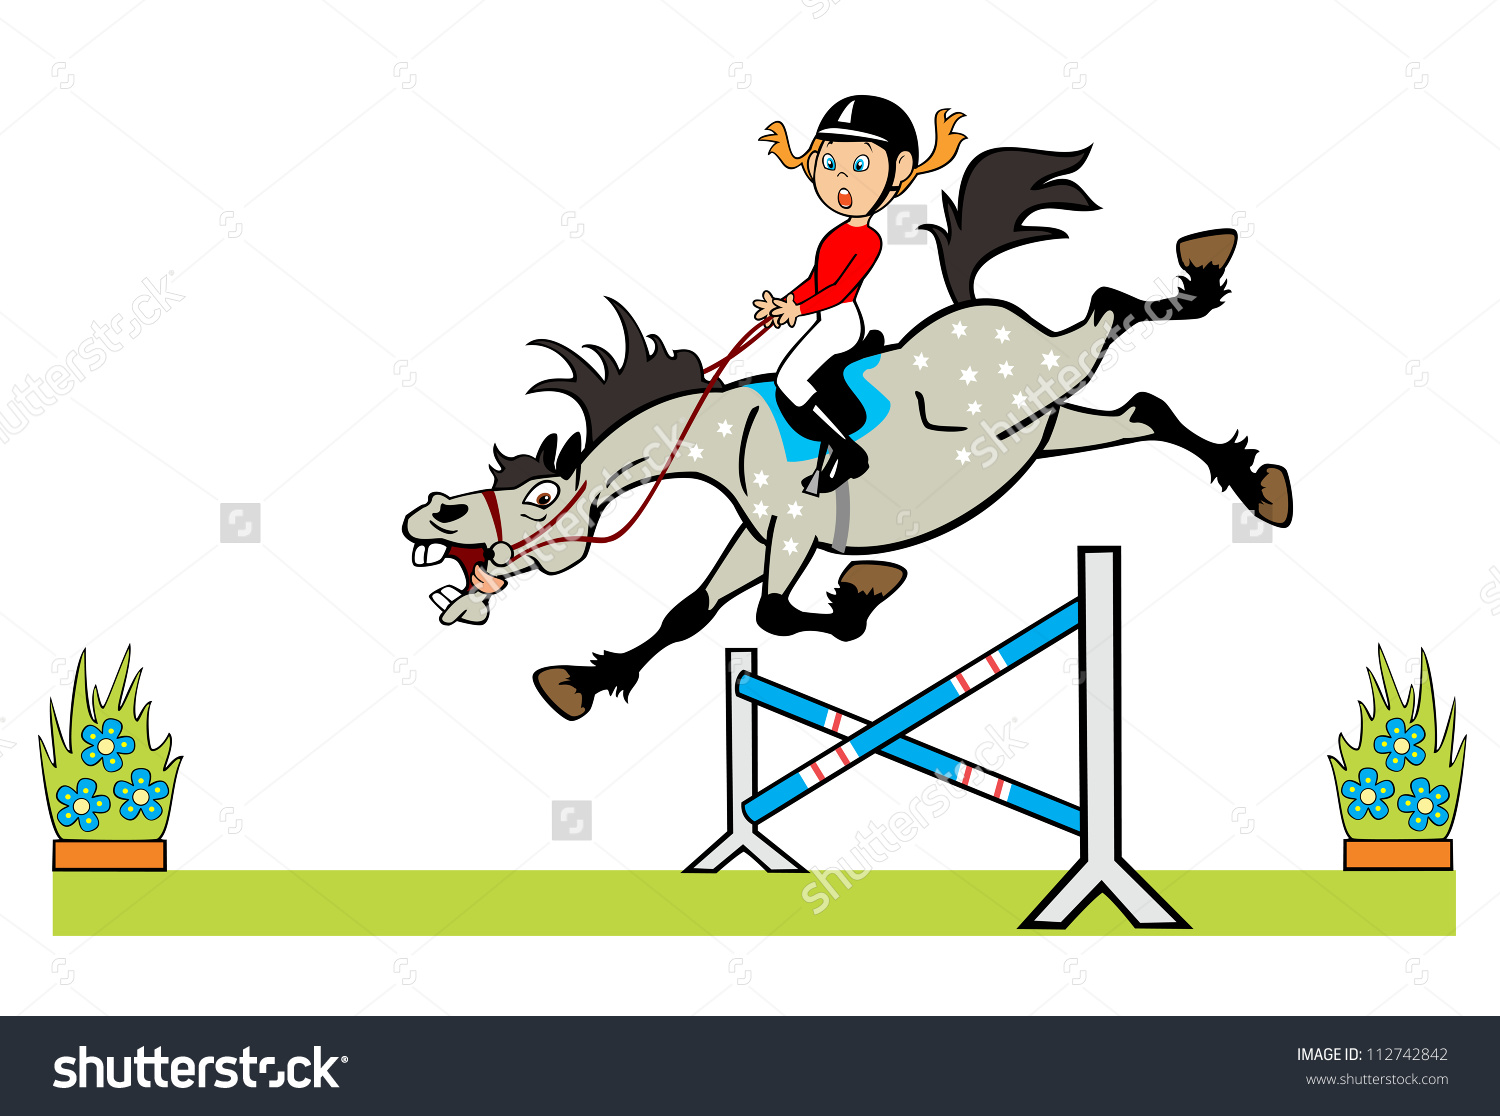 Horse Ridergirl Pony Jumping Hurdlevector Cartoon Stock Vector.